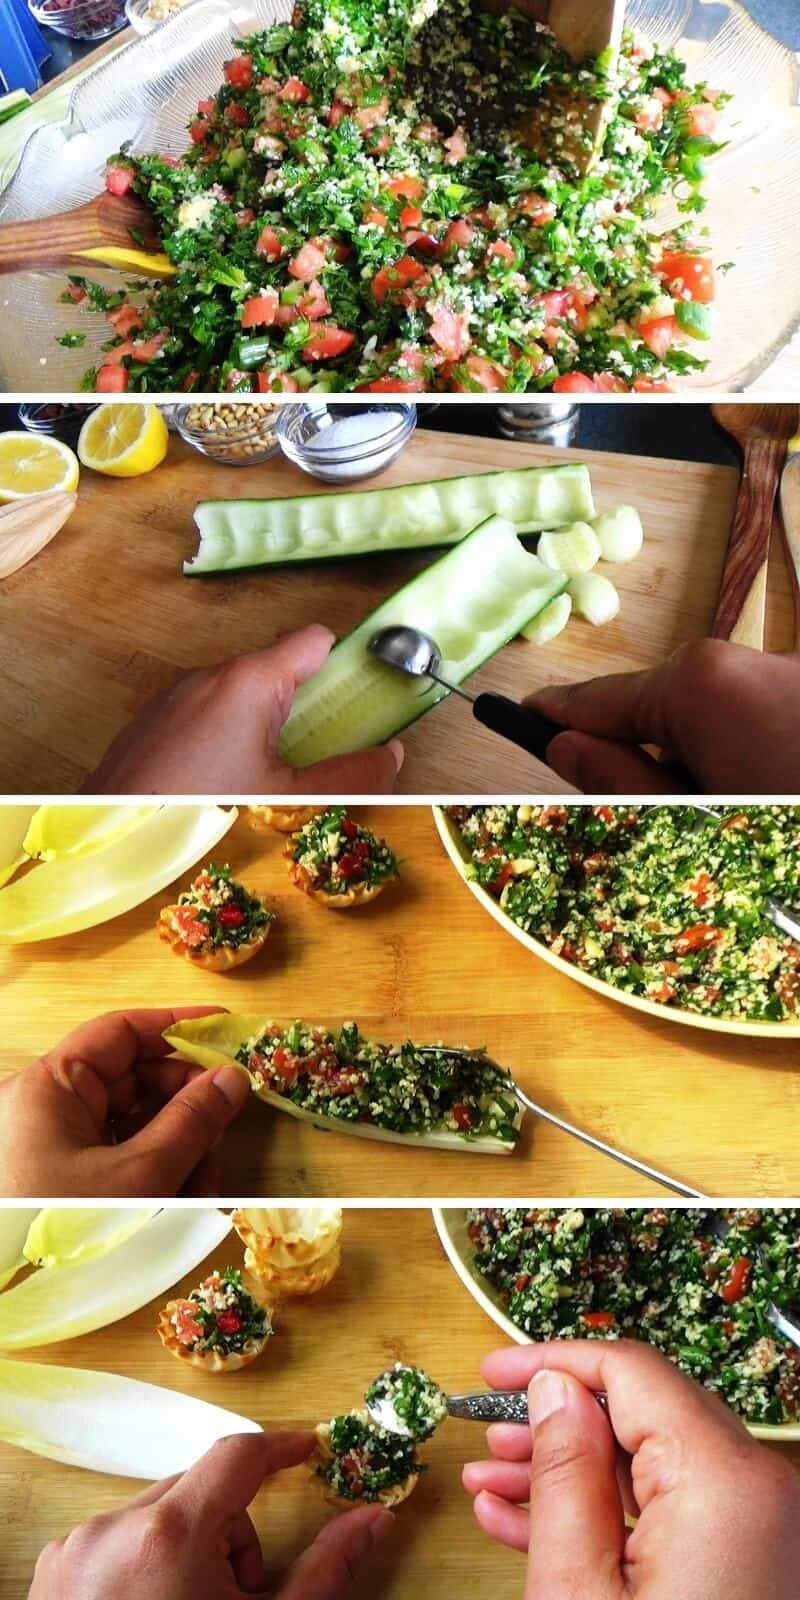 Step by step preparation of bite sized tabouli appetizers.